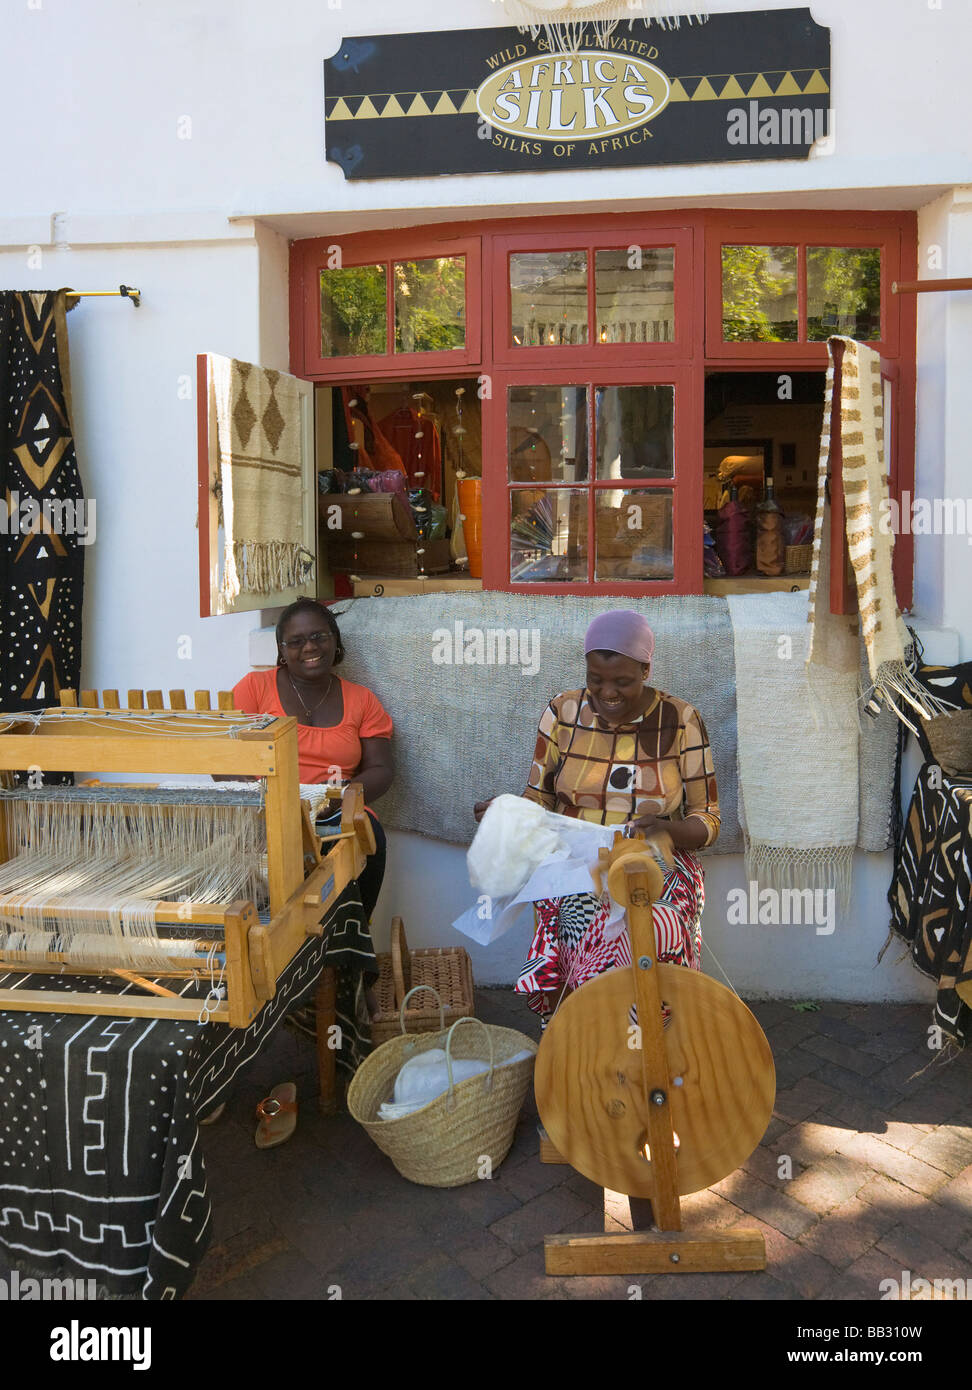 "African women weaving silk, Stellenbosch, ""South Africa"" Stock Photo"